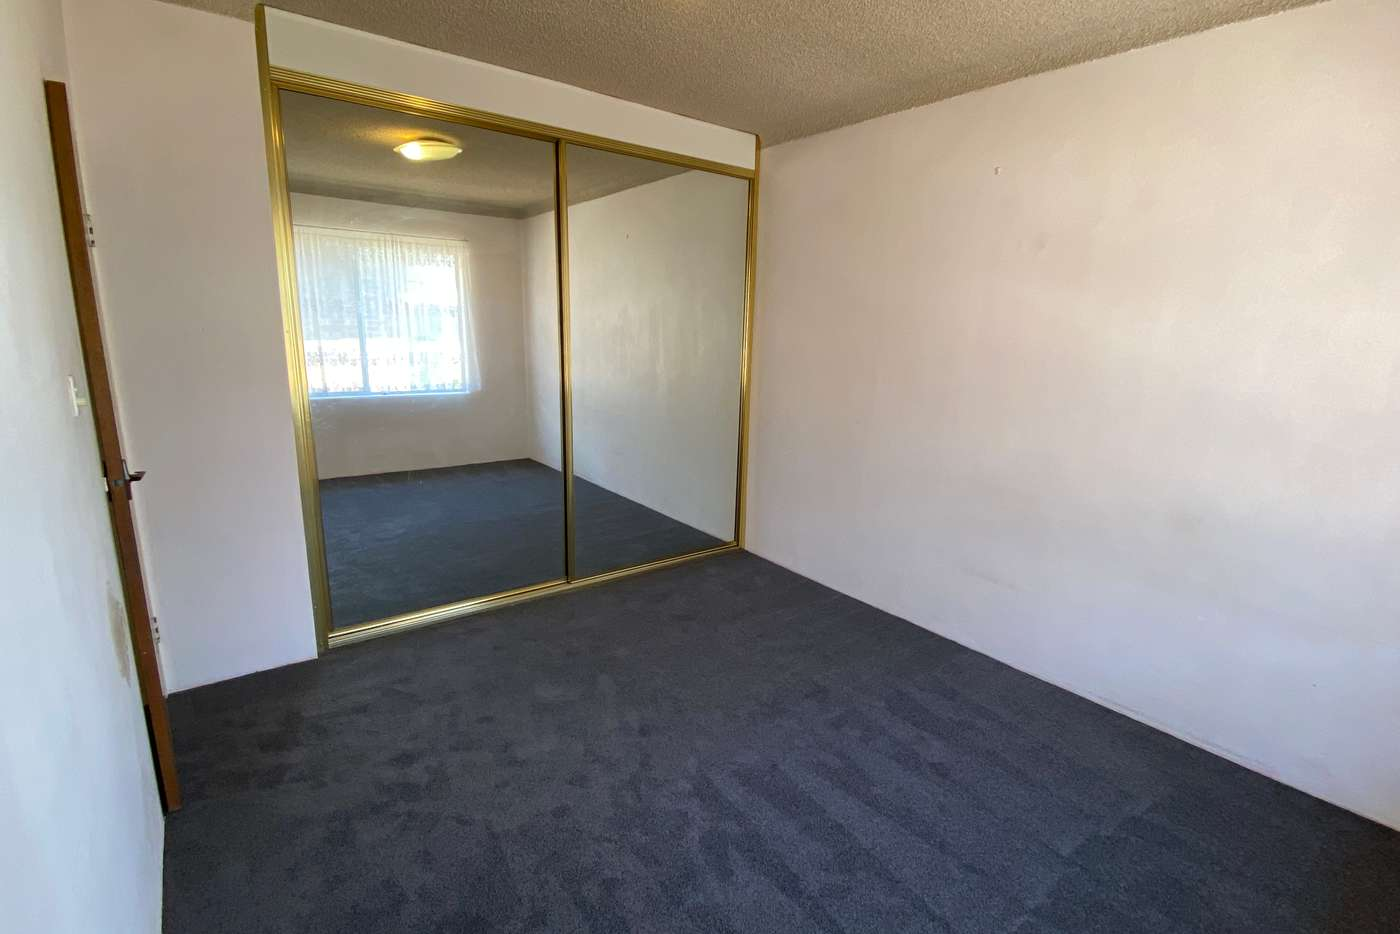 Sixth view of Homely unit listing, 6/34-38 Burdett Street, Hornsby NSW 2077